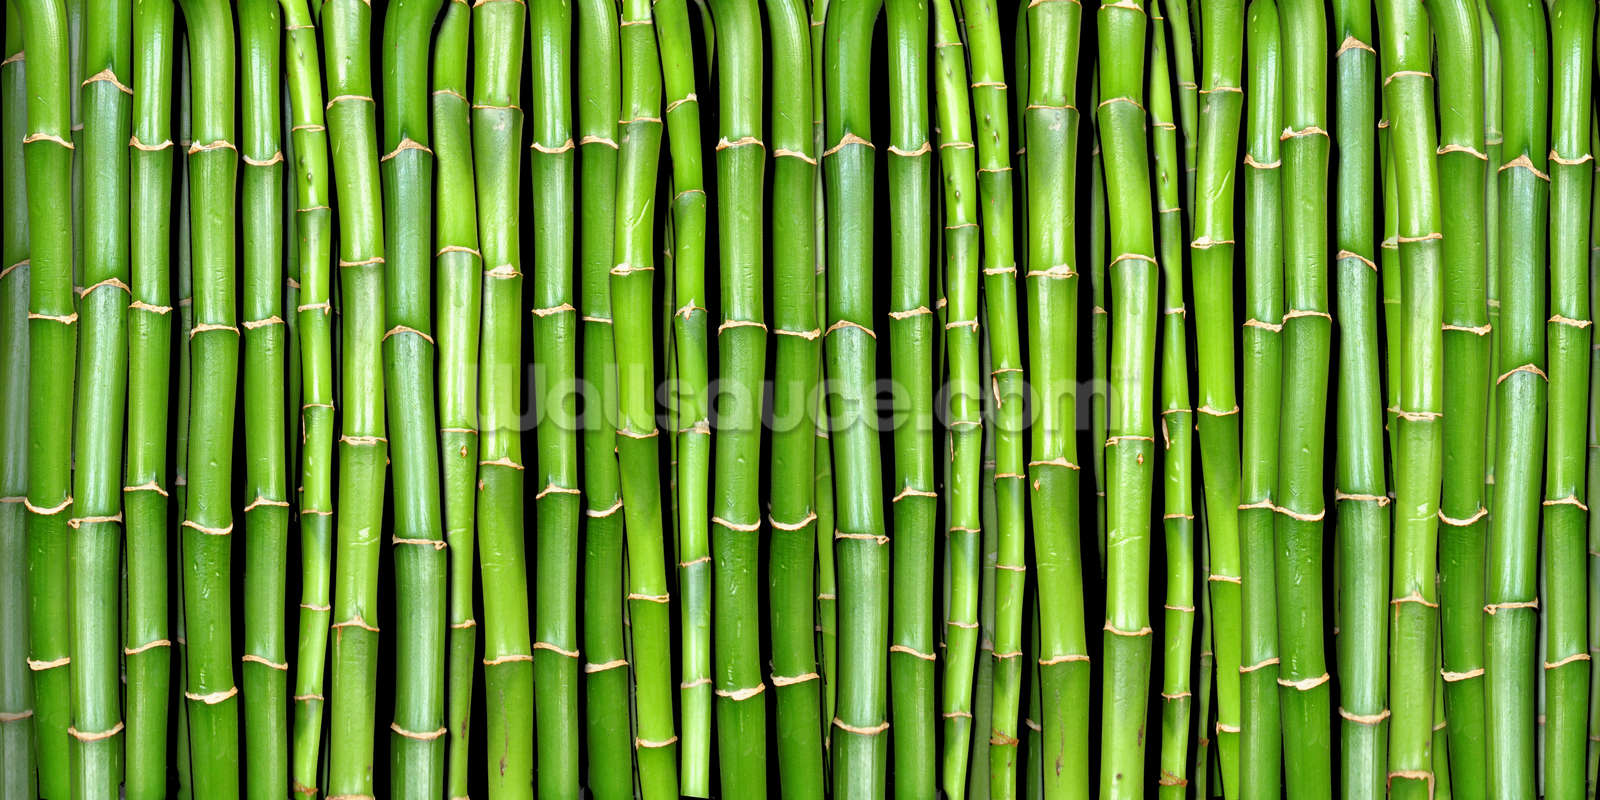 Bamboo wallpaper wall mural wallsauce for Bamboo wall mural wallpaper